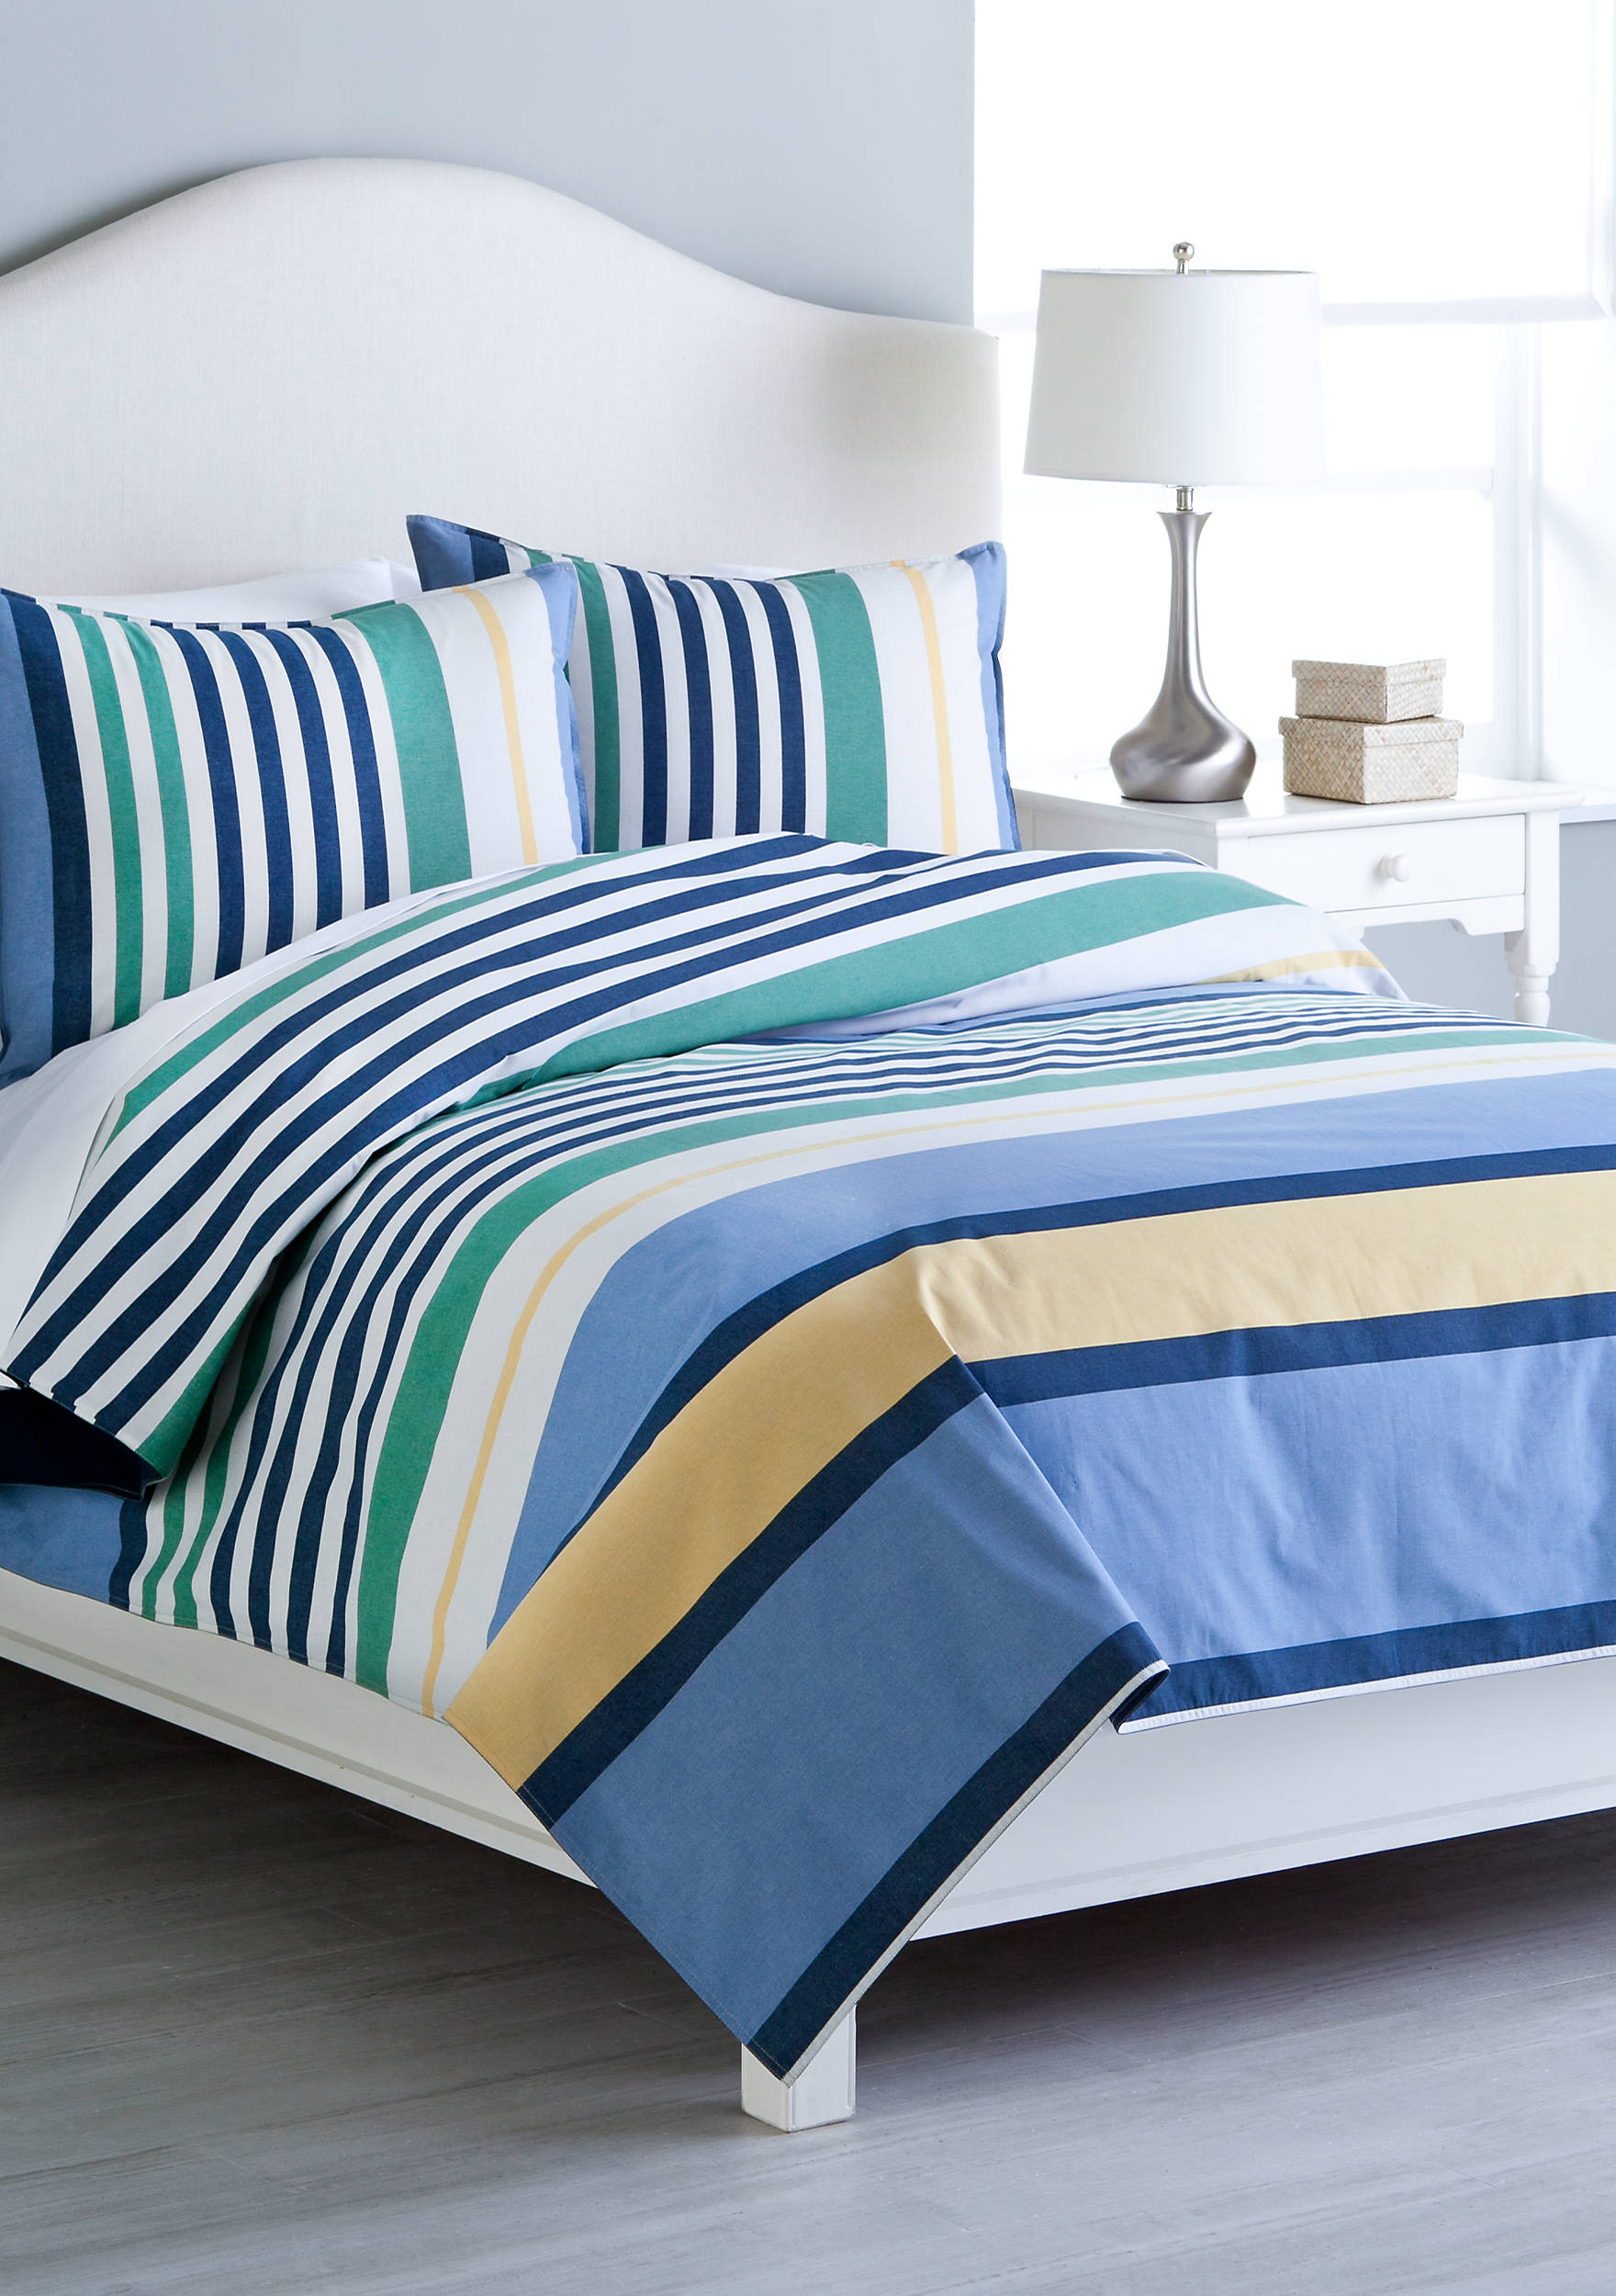 echo at and purple jaipur duvet king with sets bedding comforter fabulous bathroom astounding collections white bath set nautica beyond inspiring cover